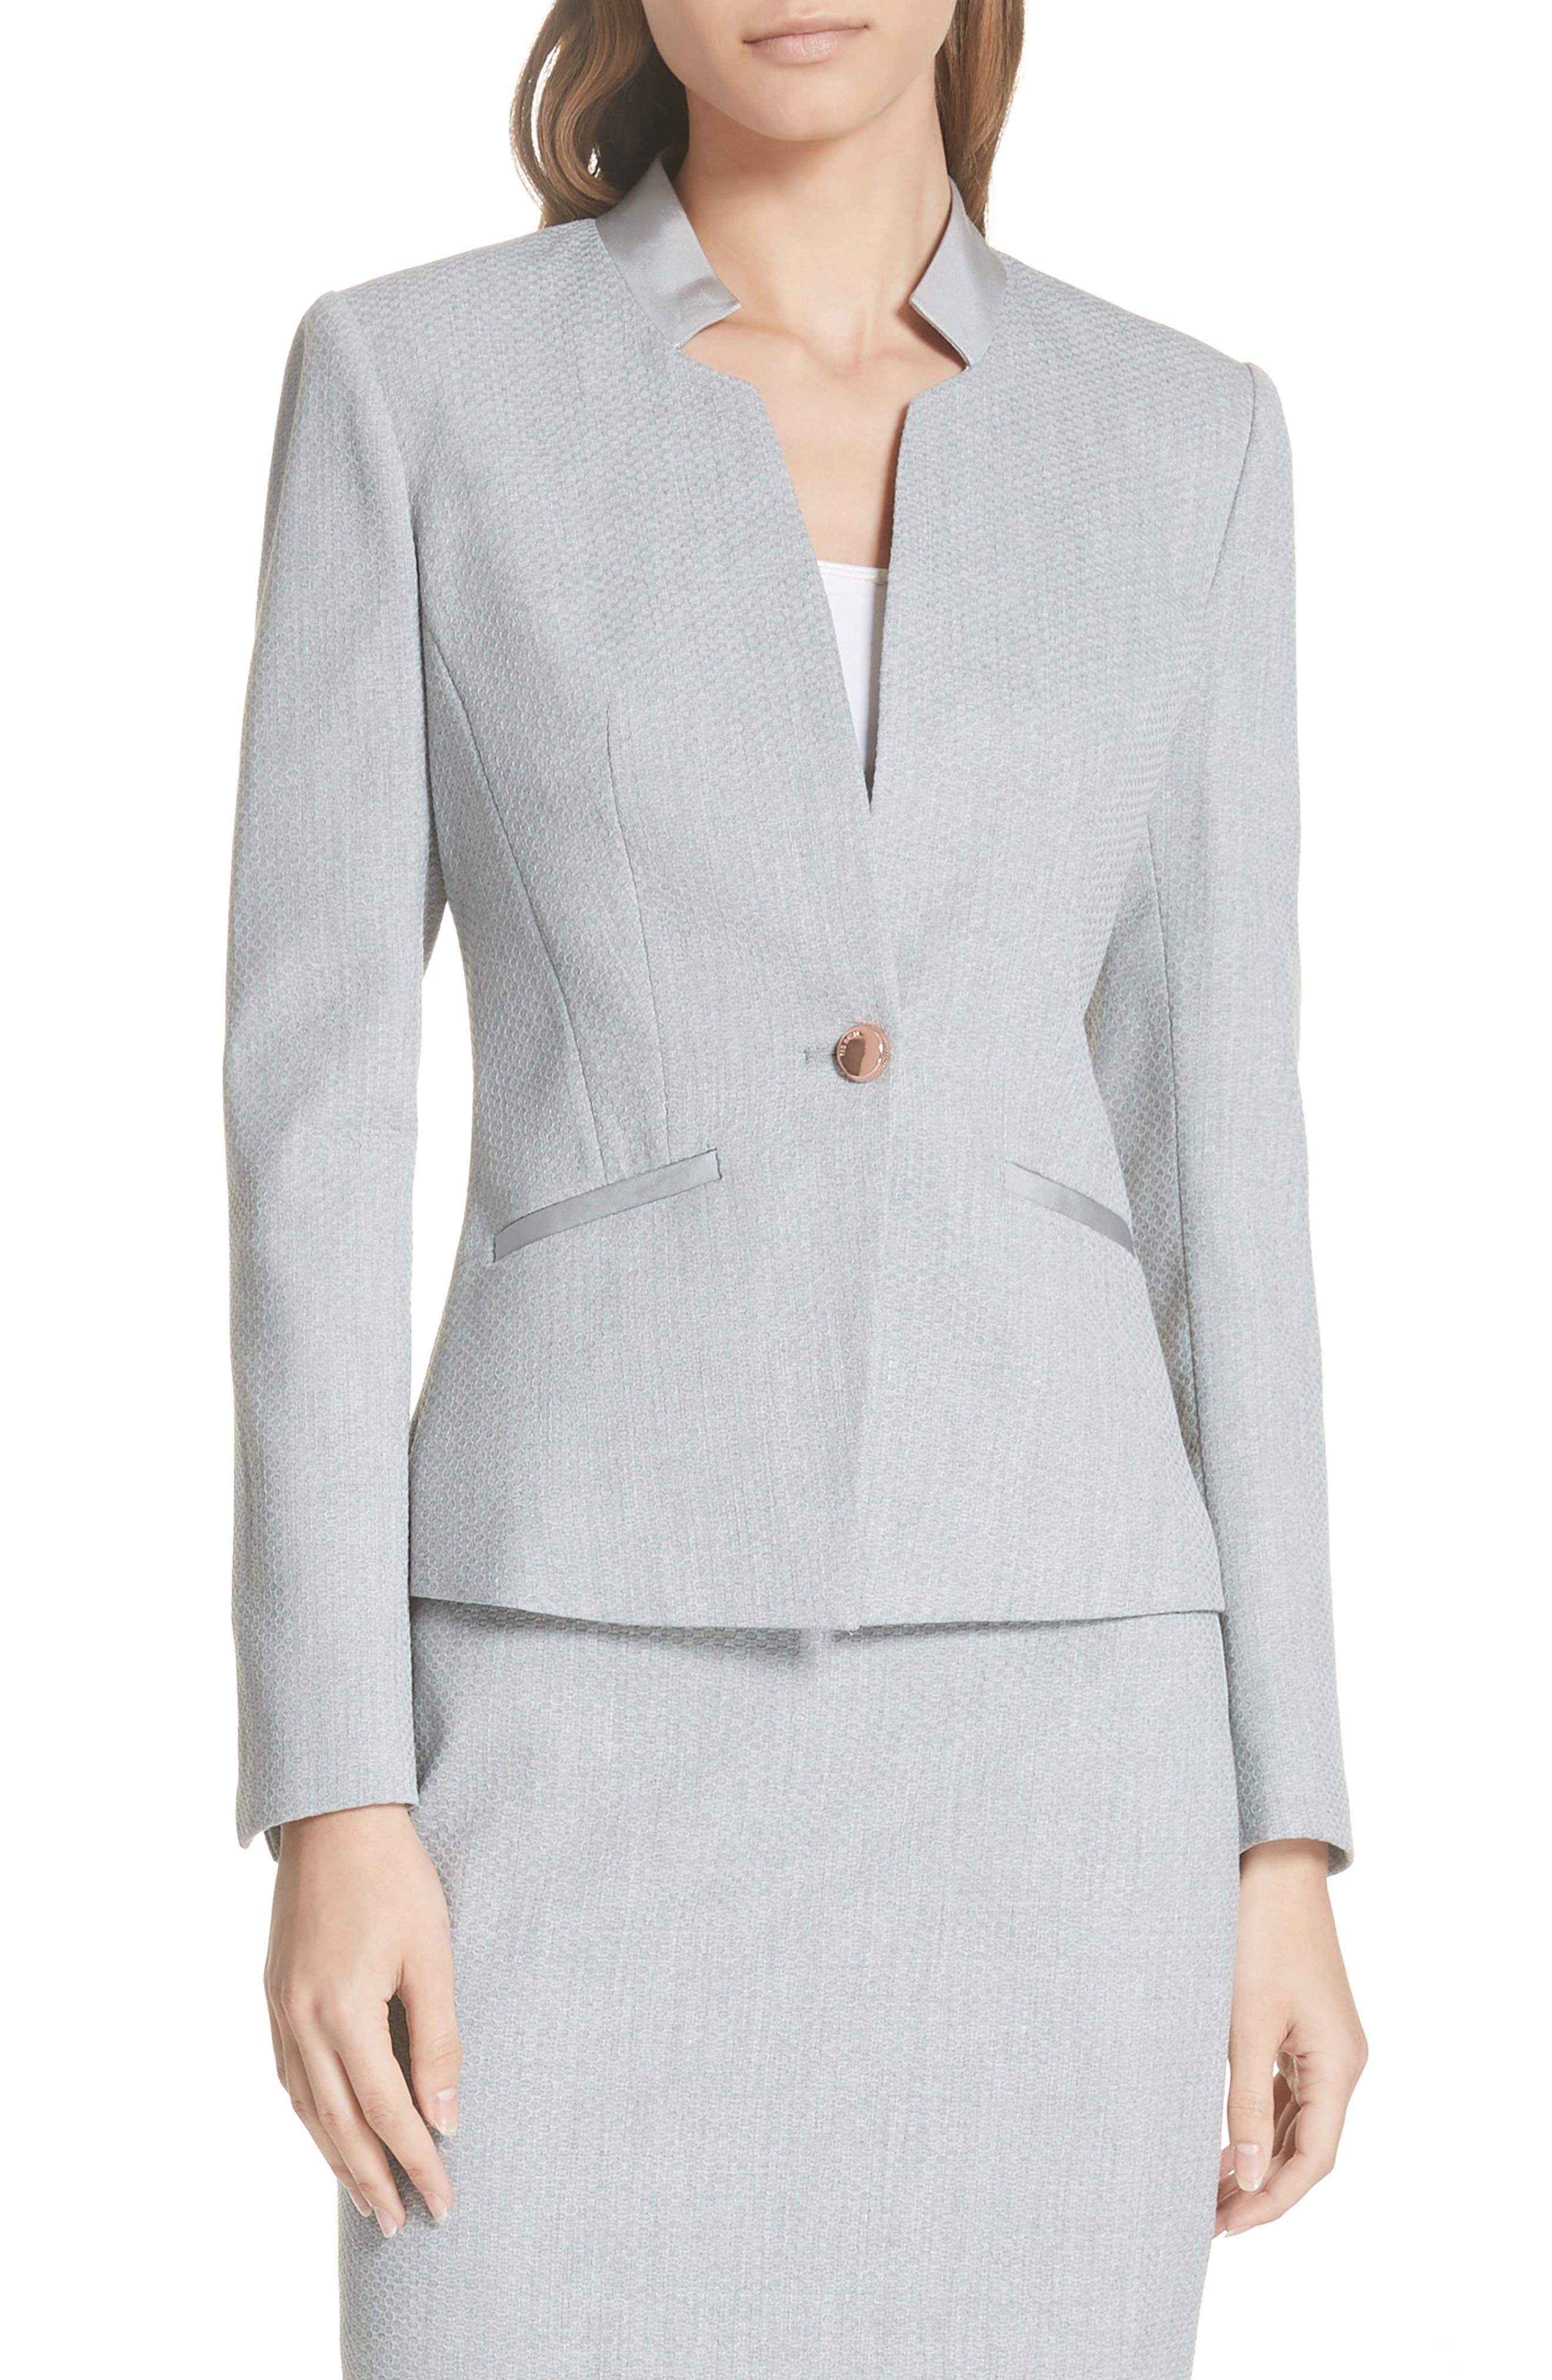 Ted Working Title Daizi Suit Jacket,                         Main,                         color, 030